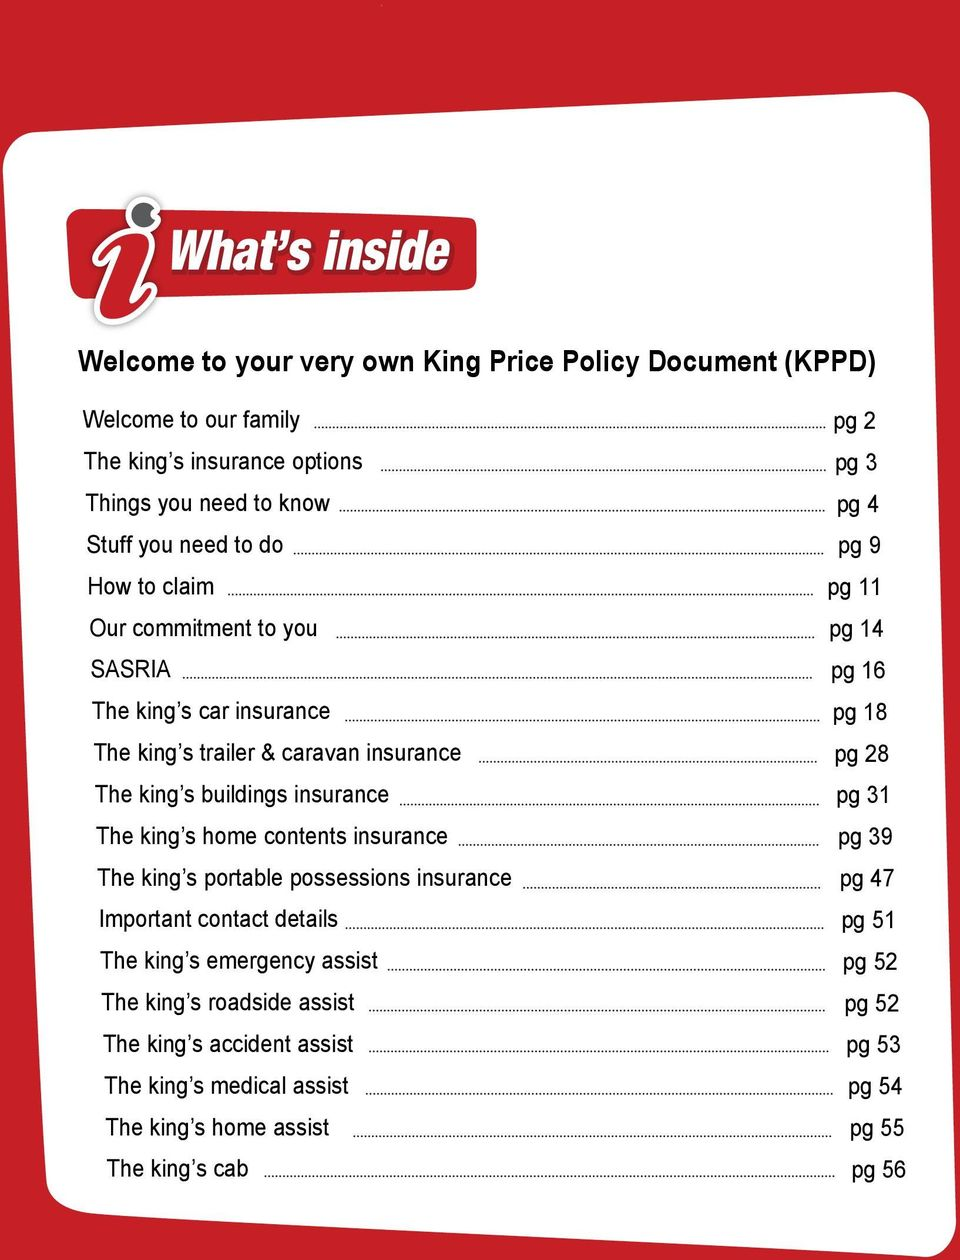 insurance The king s portable possessions insurance Important contact details The king s emergency assist The king s roadside assist The king s accident assist The